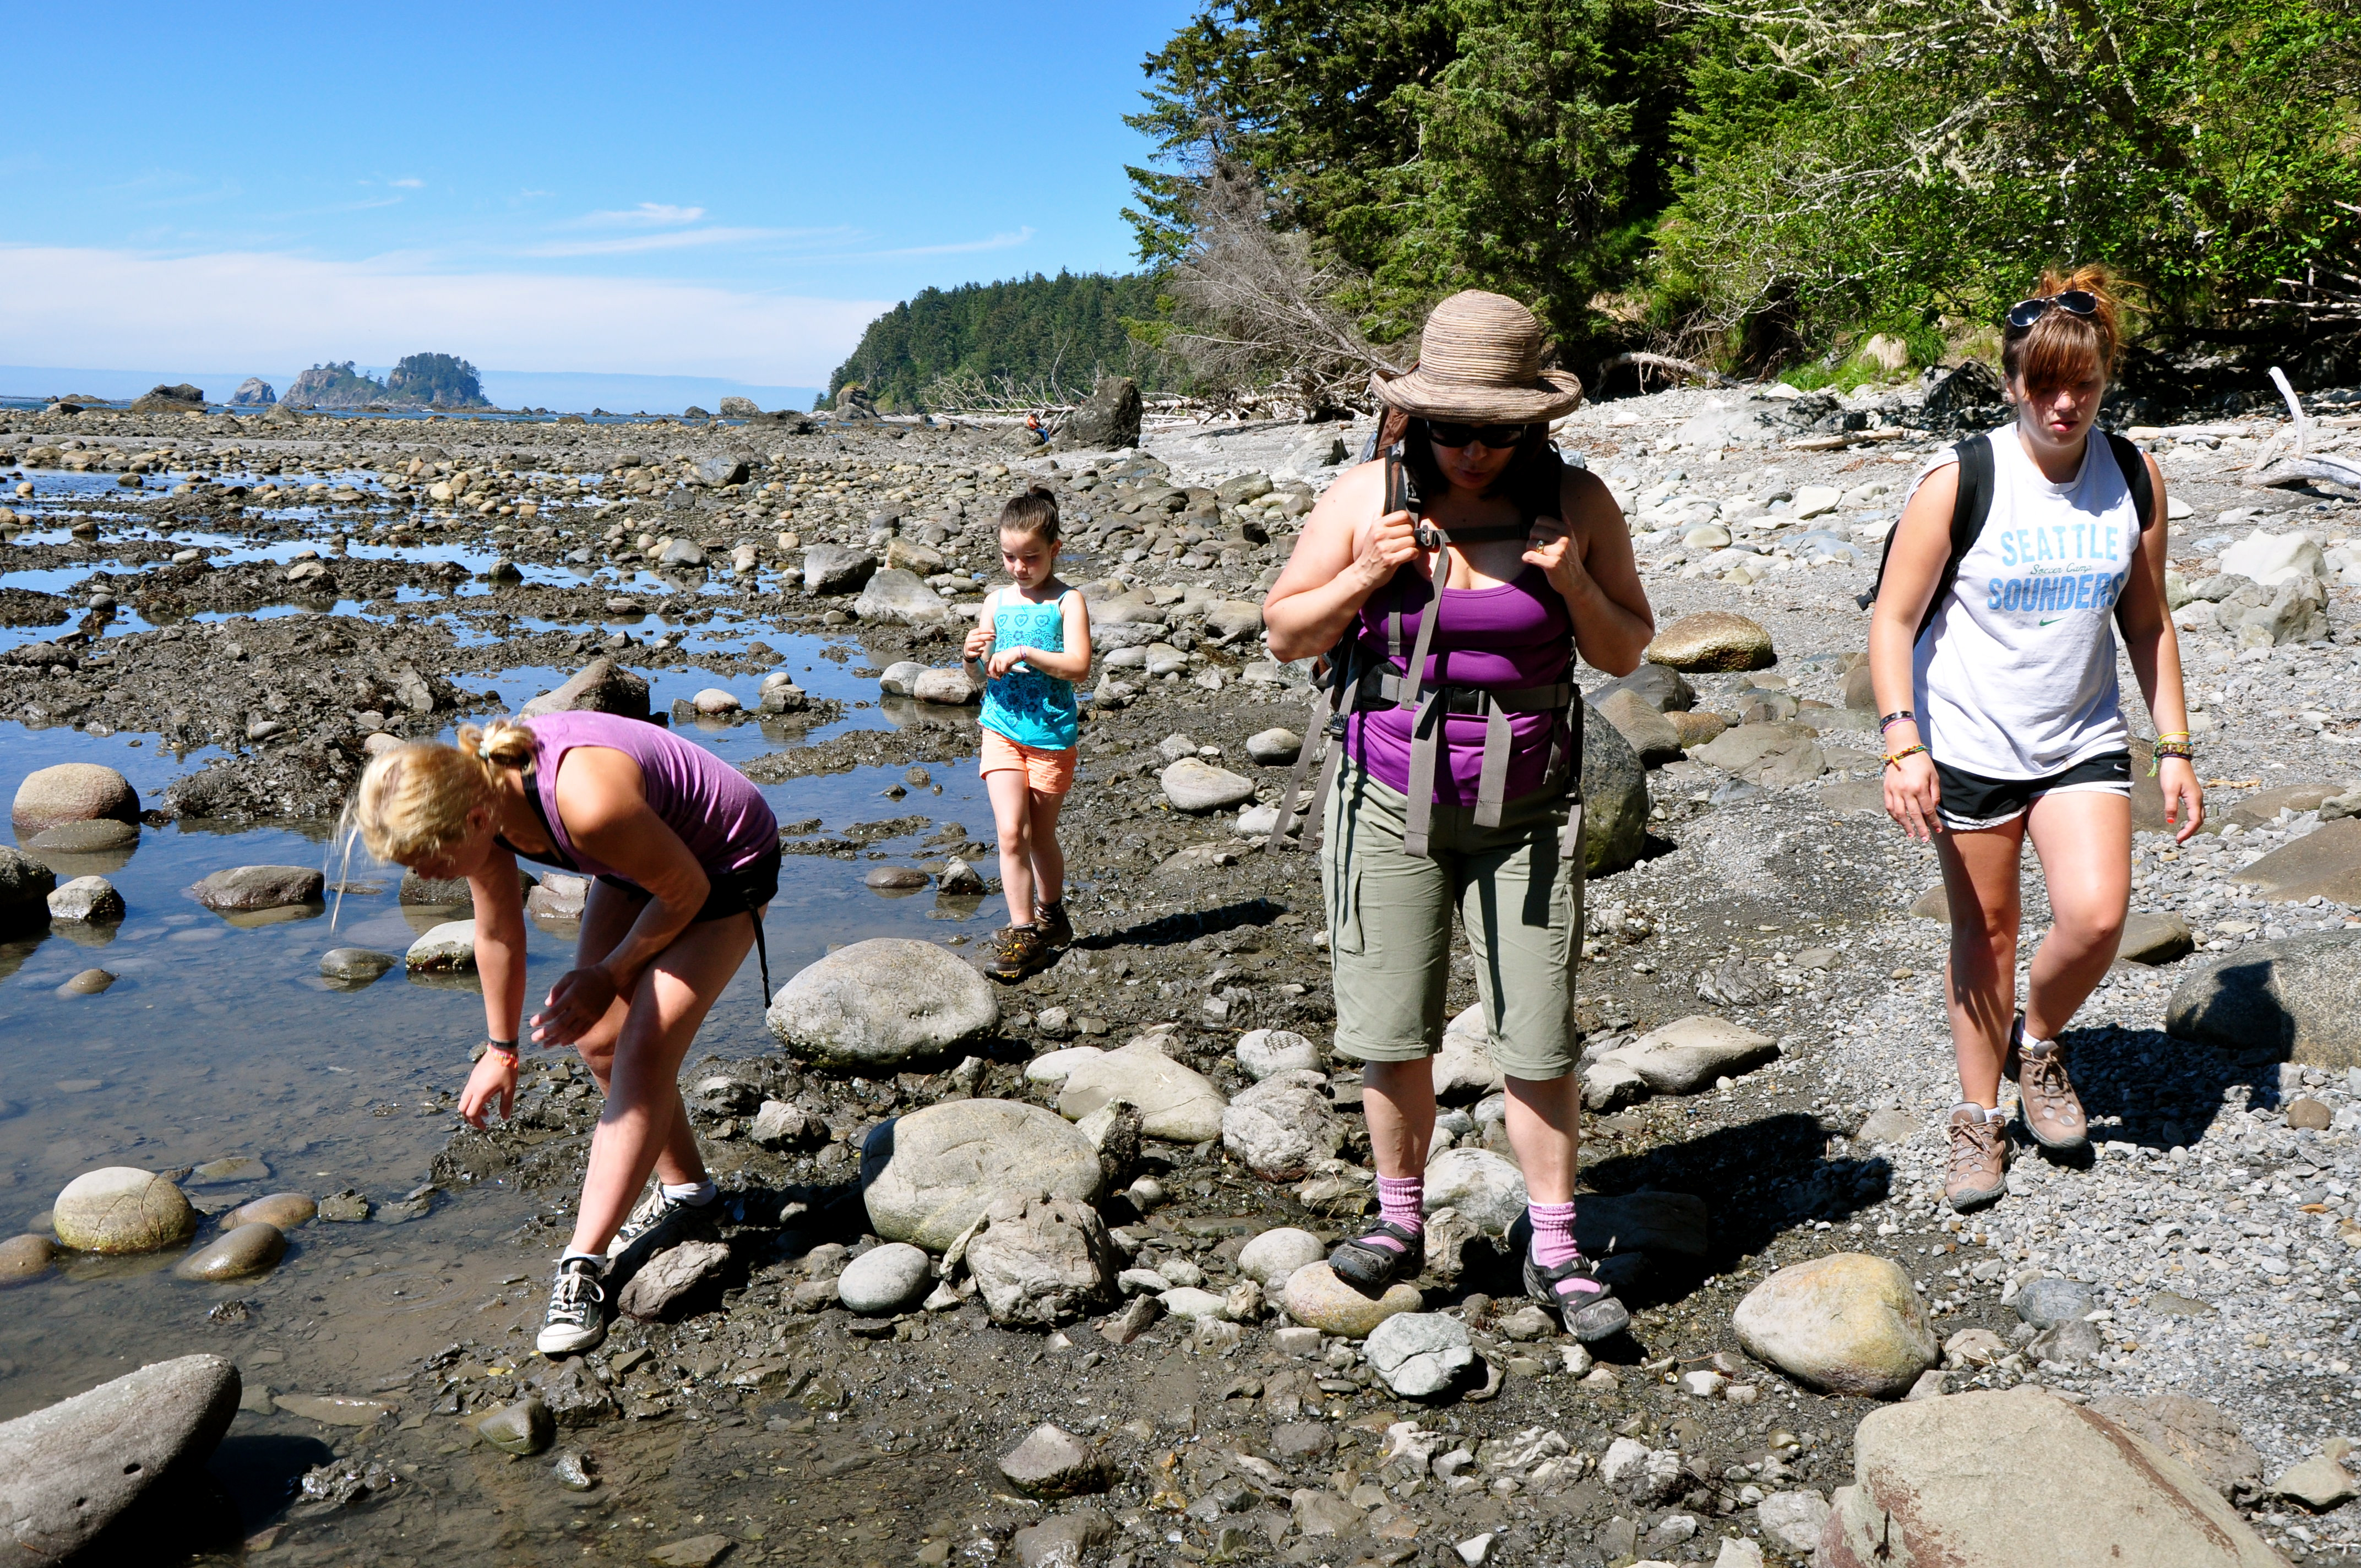 Family Hike on the Pacific Coast Ozette Triangle Trails, Olympic National Park. Friday 20 August 2010.